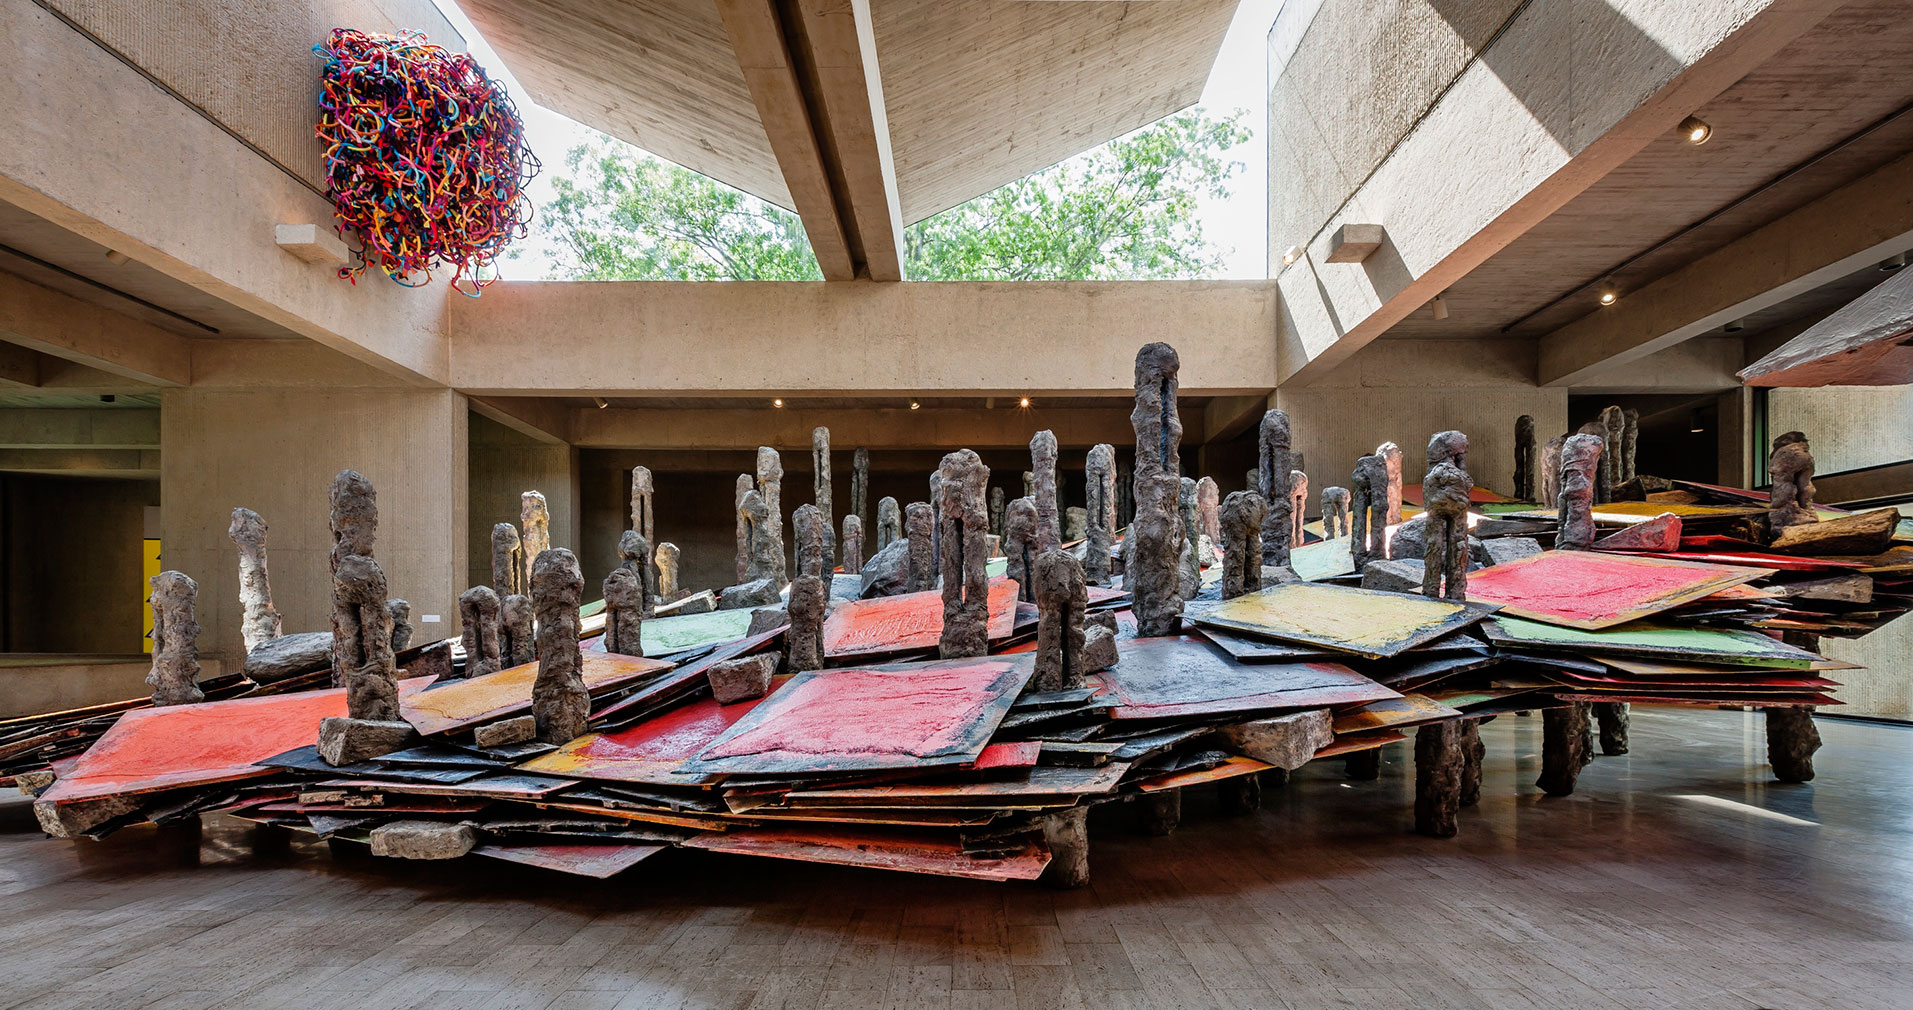 Venice biennale preview, featuring the work of Phyllida Barlow